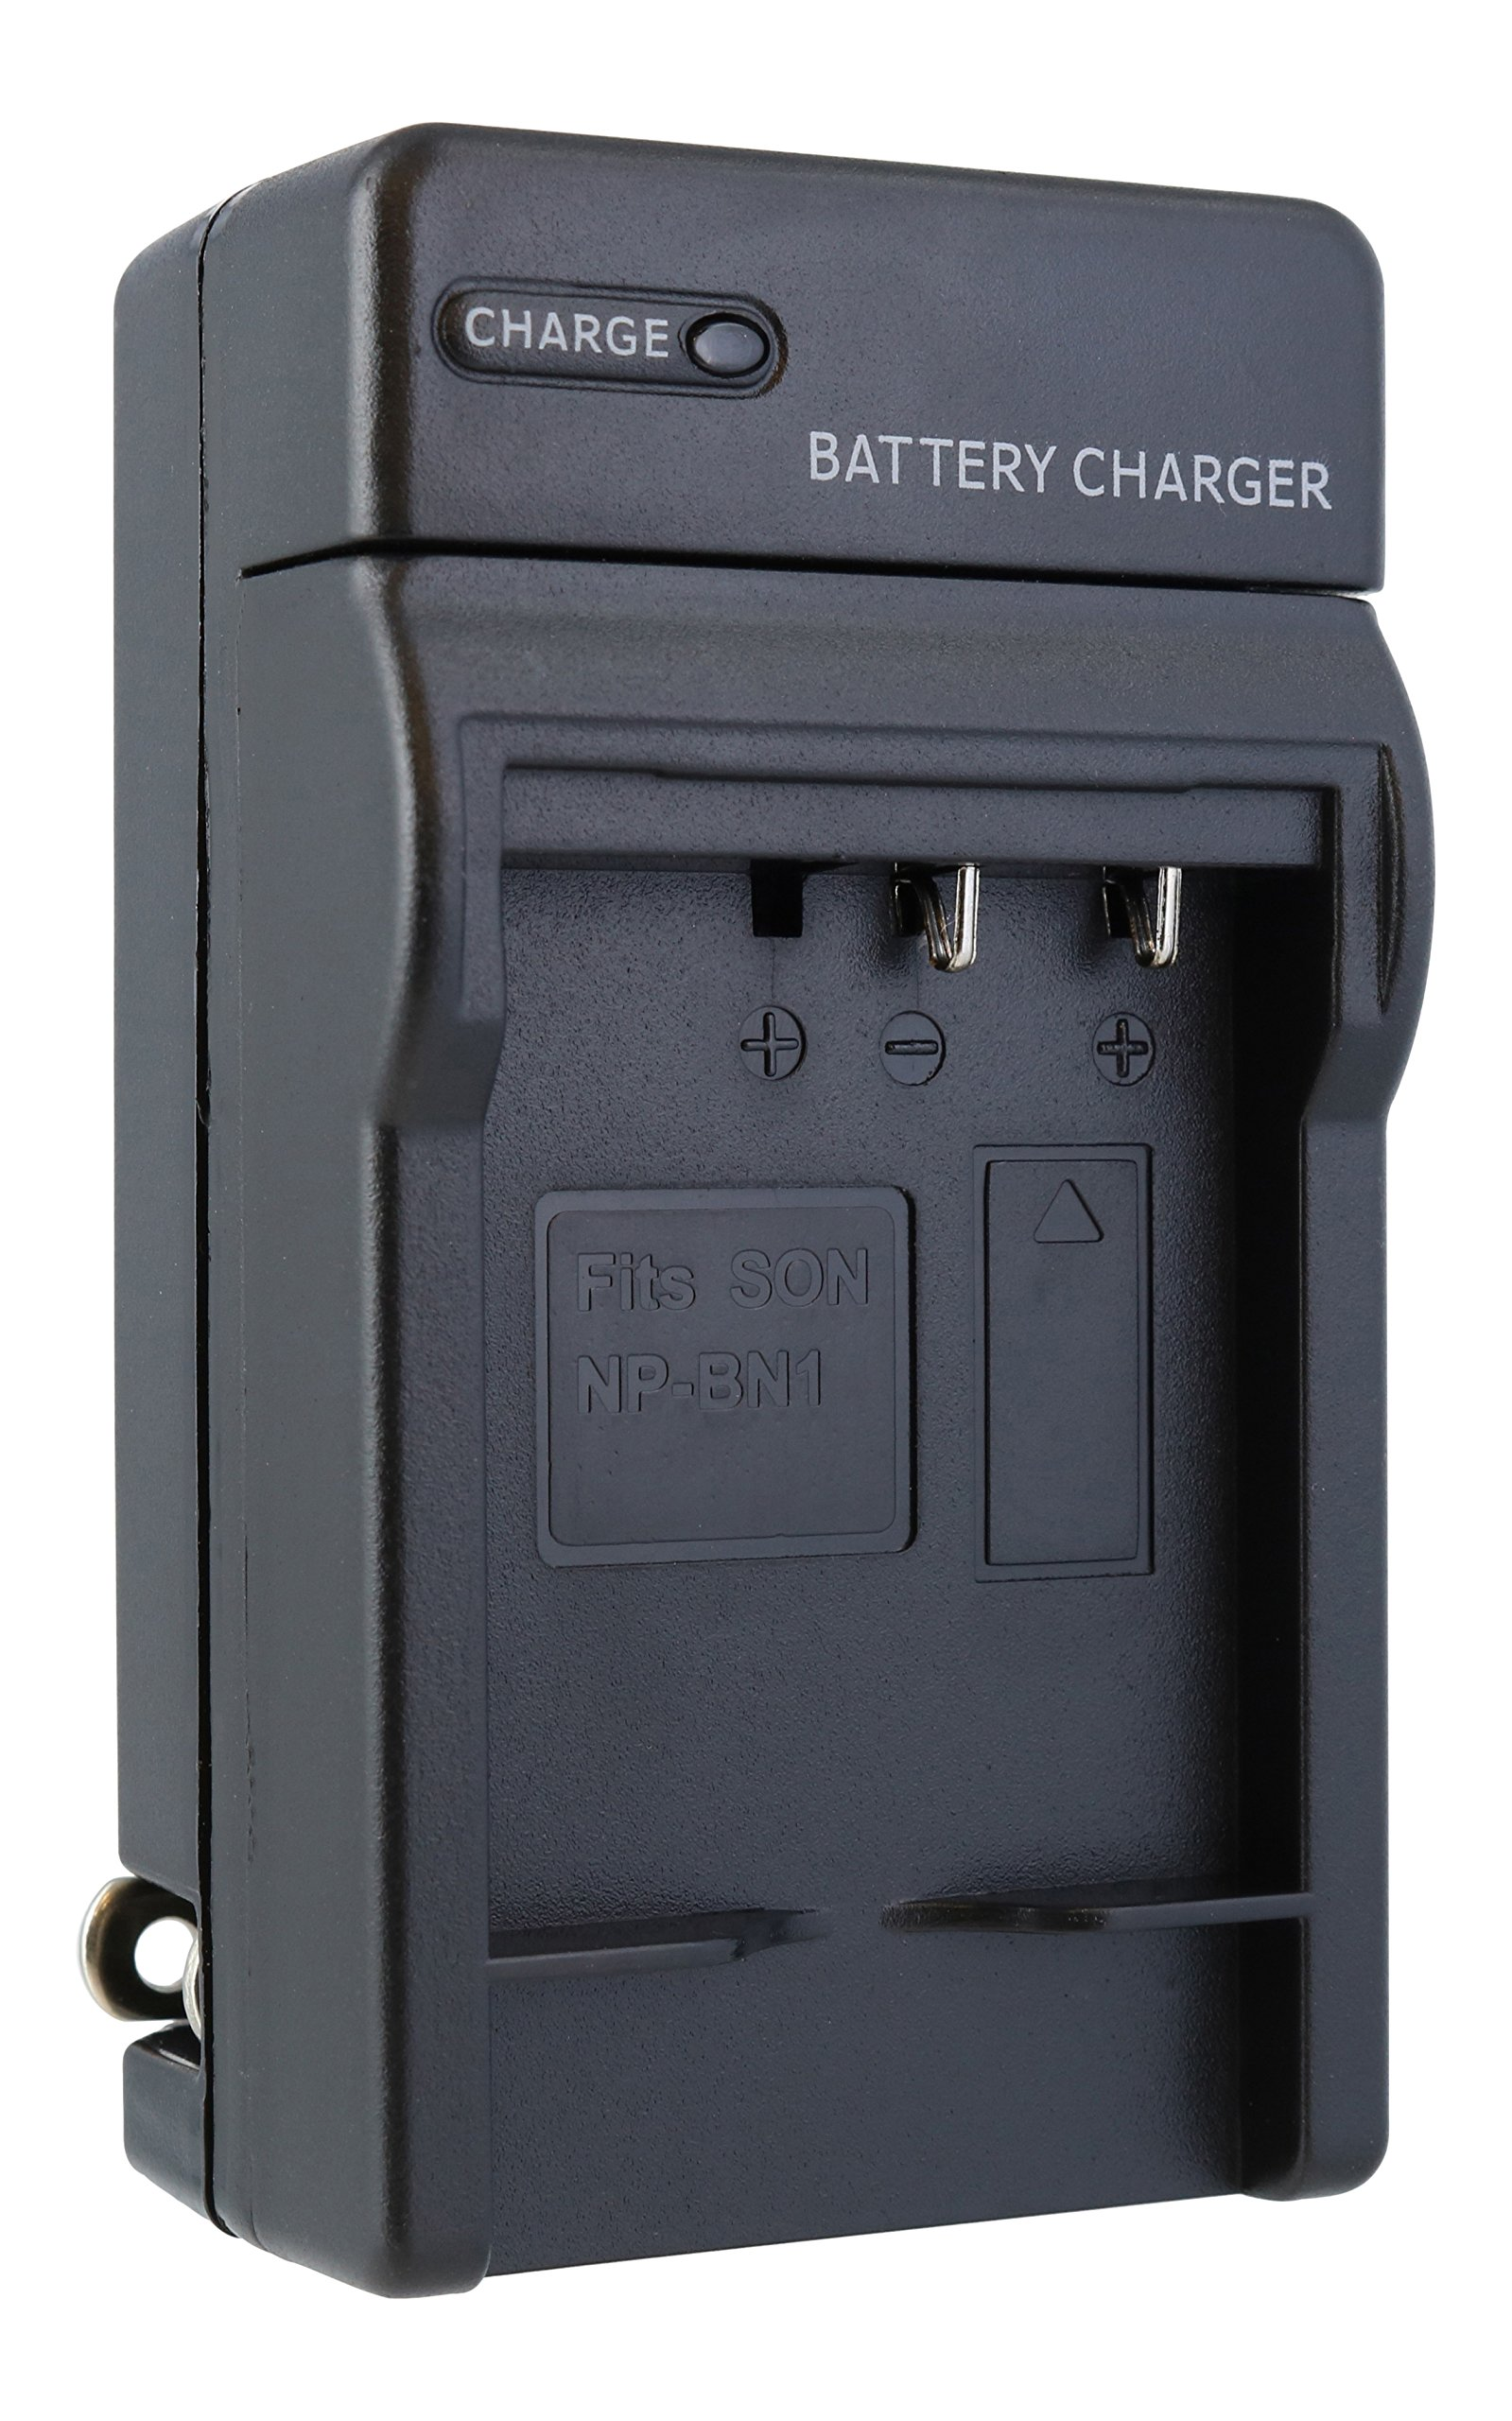 TechFuel Battery Charger Kit for Sony Cyber-shot DSC-W530 Camera - For Home, Car and Travel Use